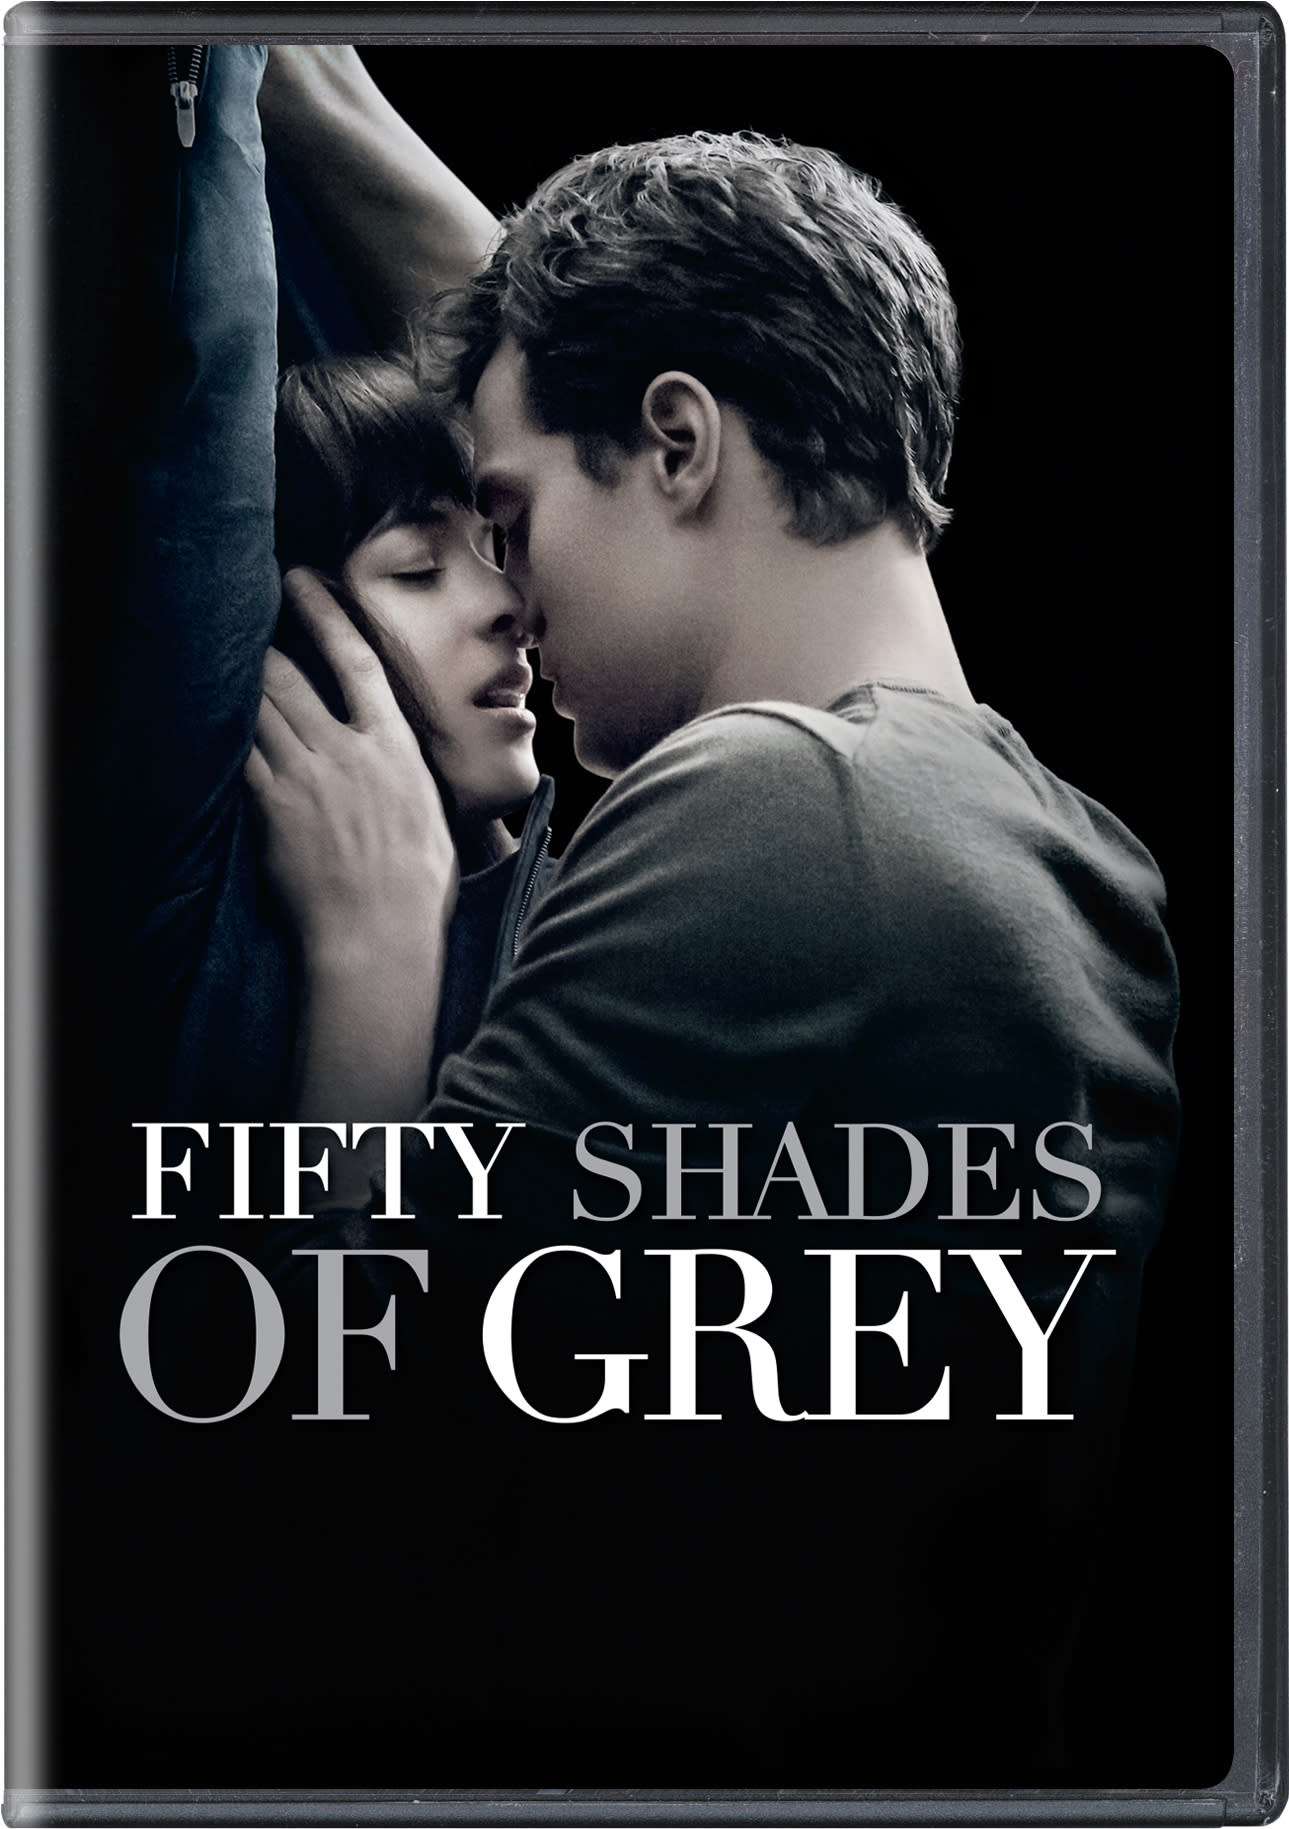 Fifty Shades of Grey [DVD]